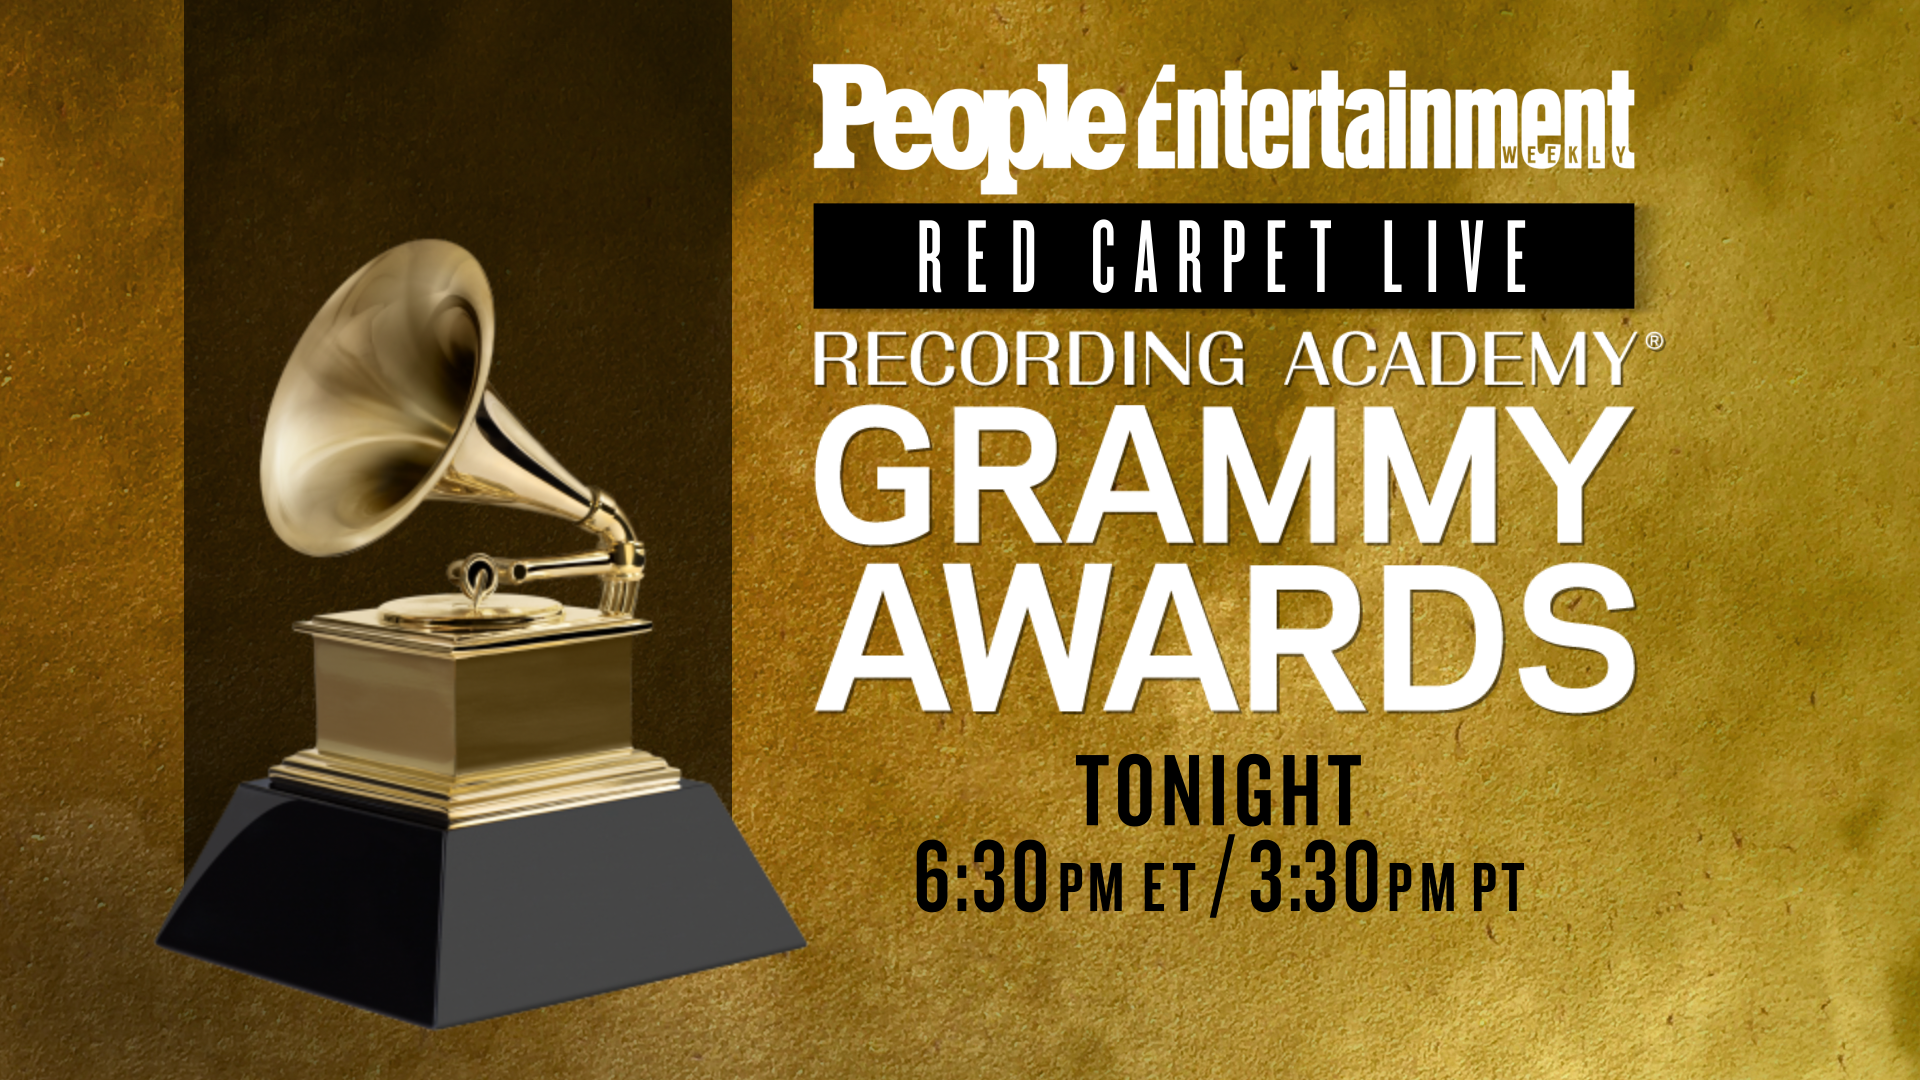 Grammy Awards 2021 Red Carpet Live - Tonight